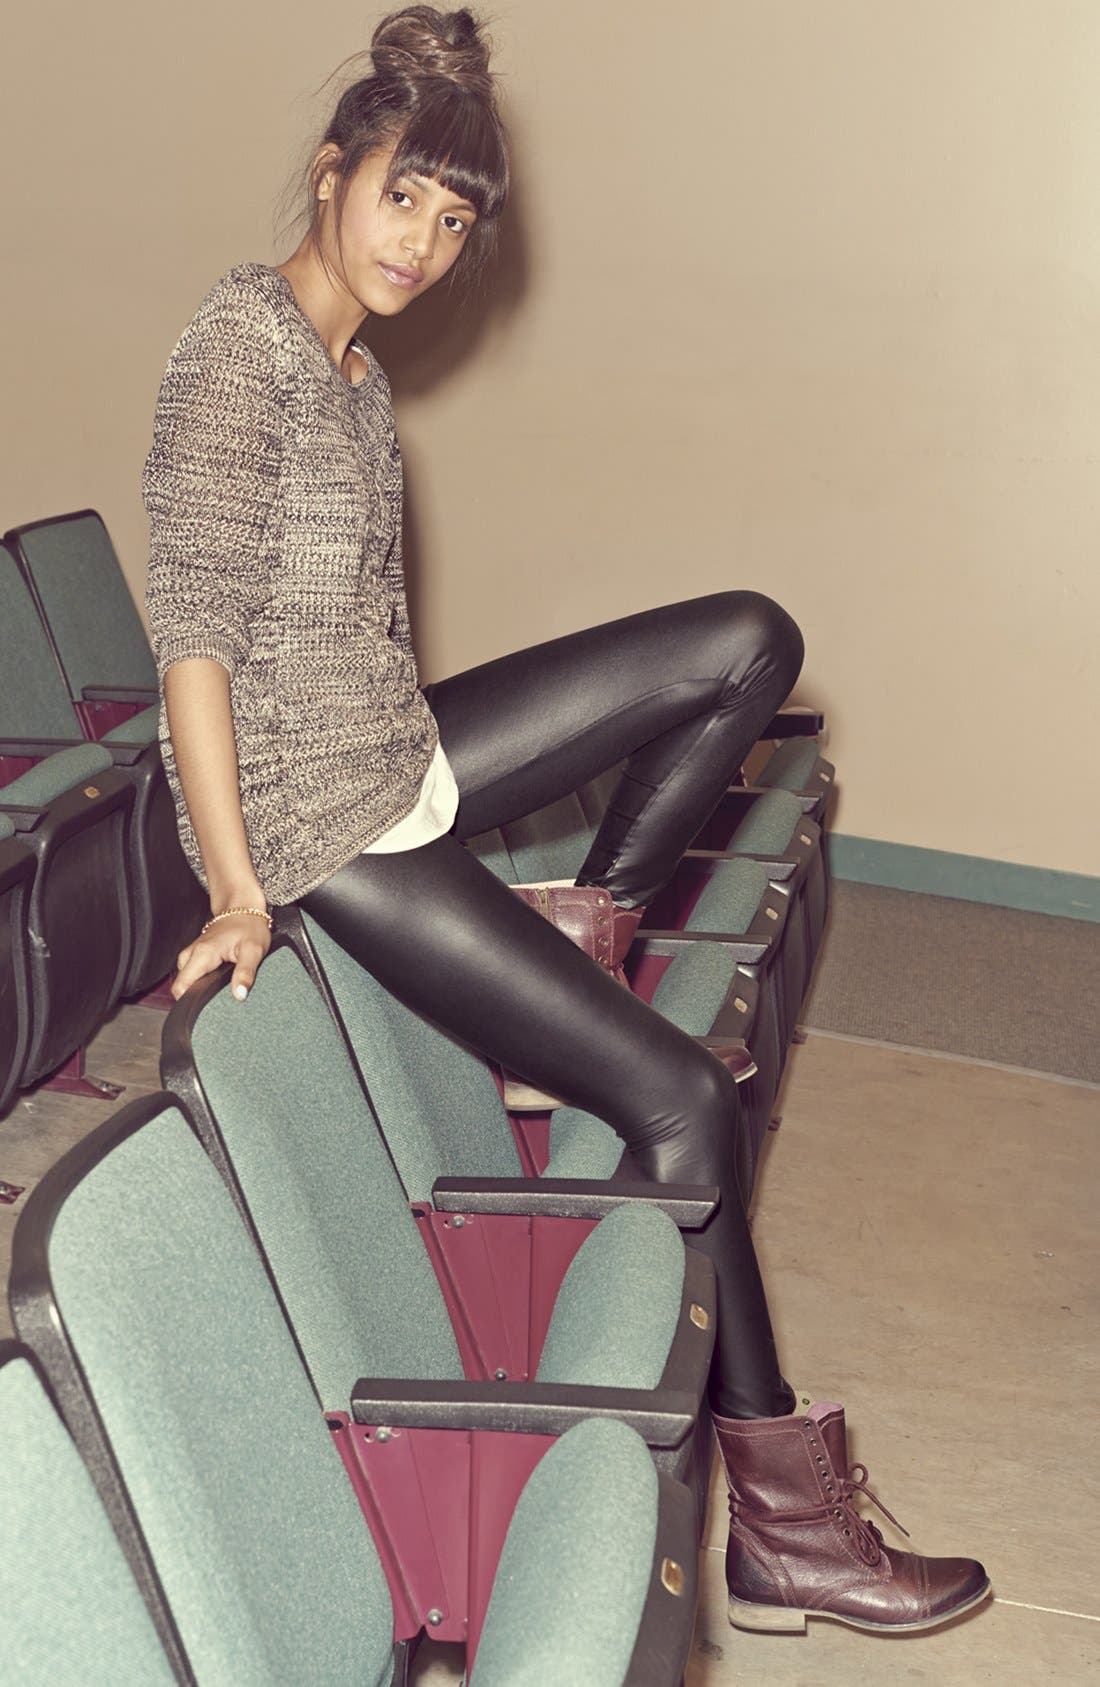 Alternate Image 1 Selected - Rubbish® Sweater & Mimi Chica Leggings